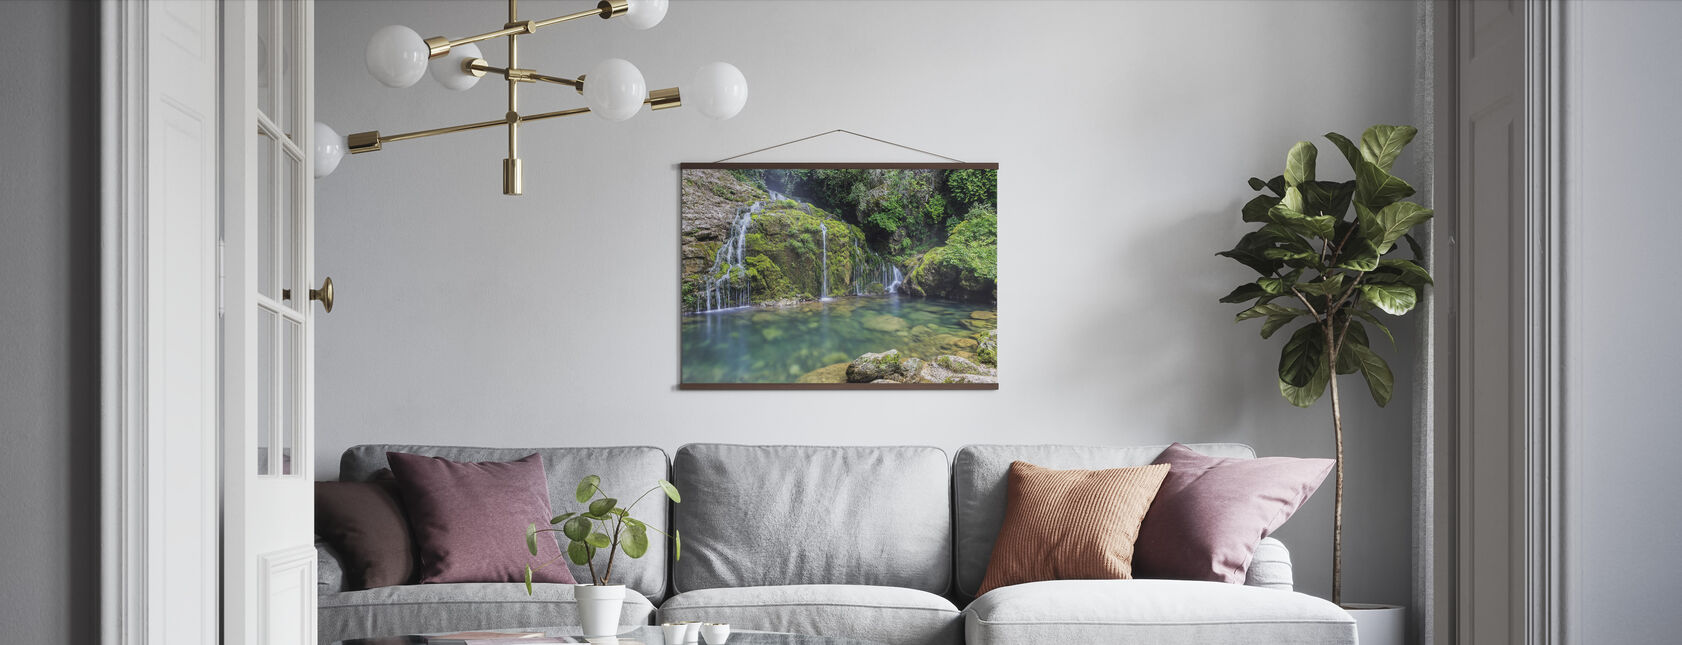 Water from the Mountain - Poster - Living Room